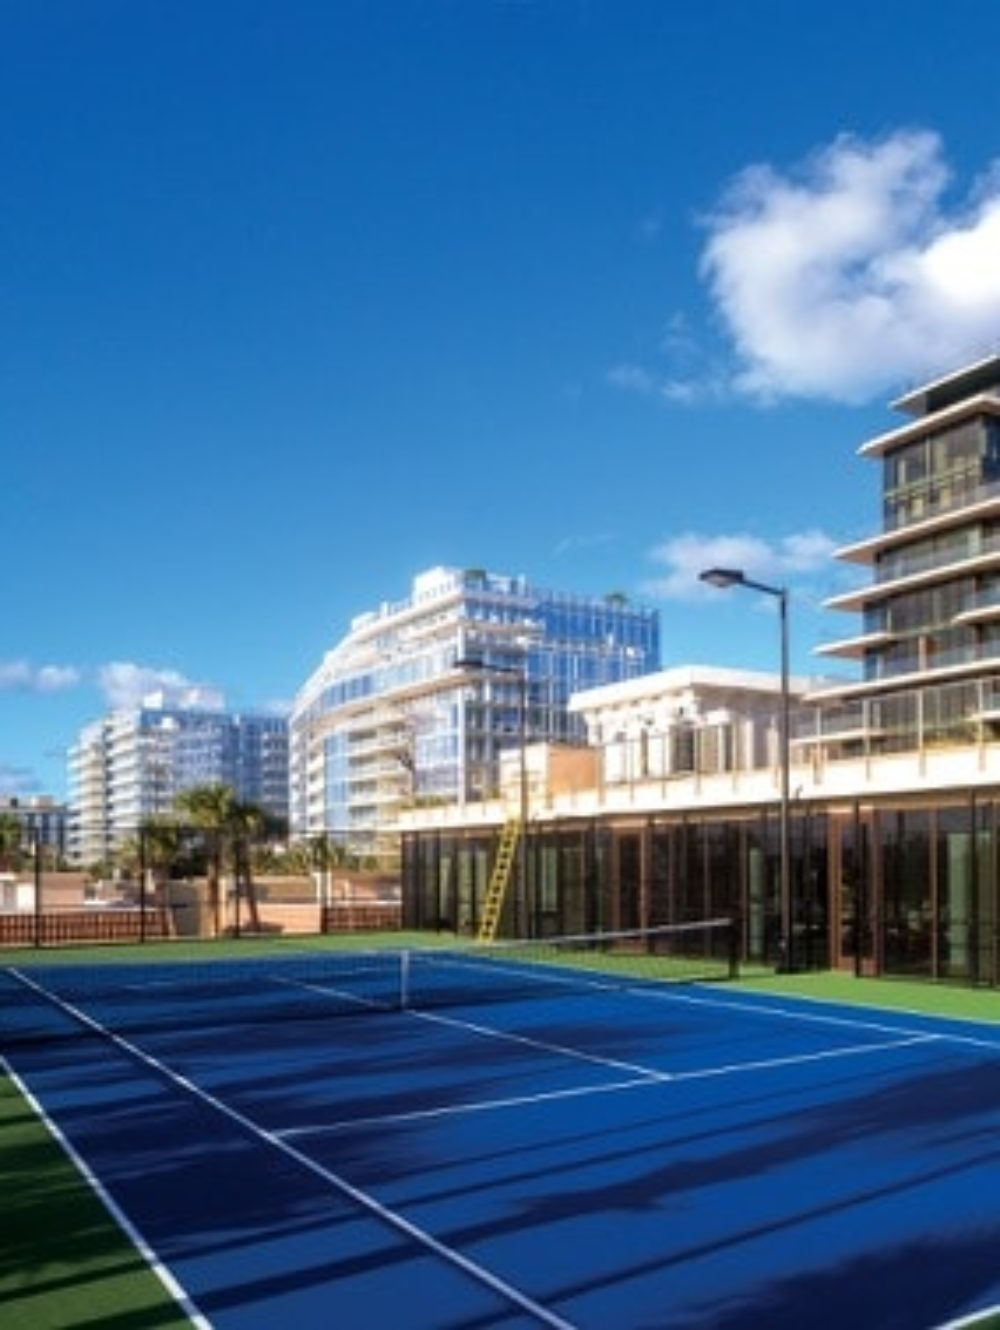 Exterior view of Arte Surfside condominiums tennis court. Has a view of oceanfront and surrounding buildings.